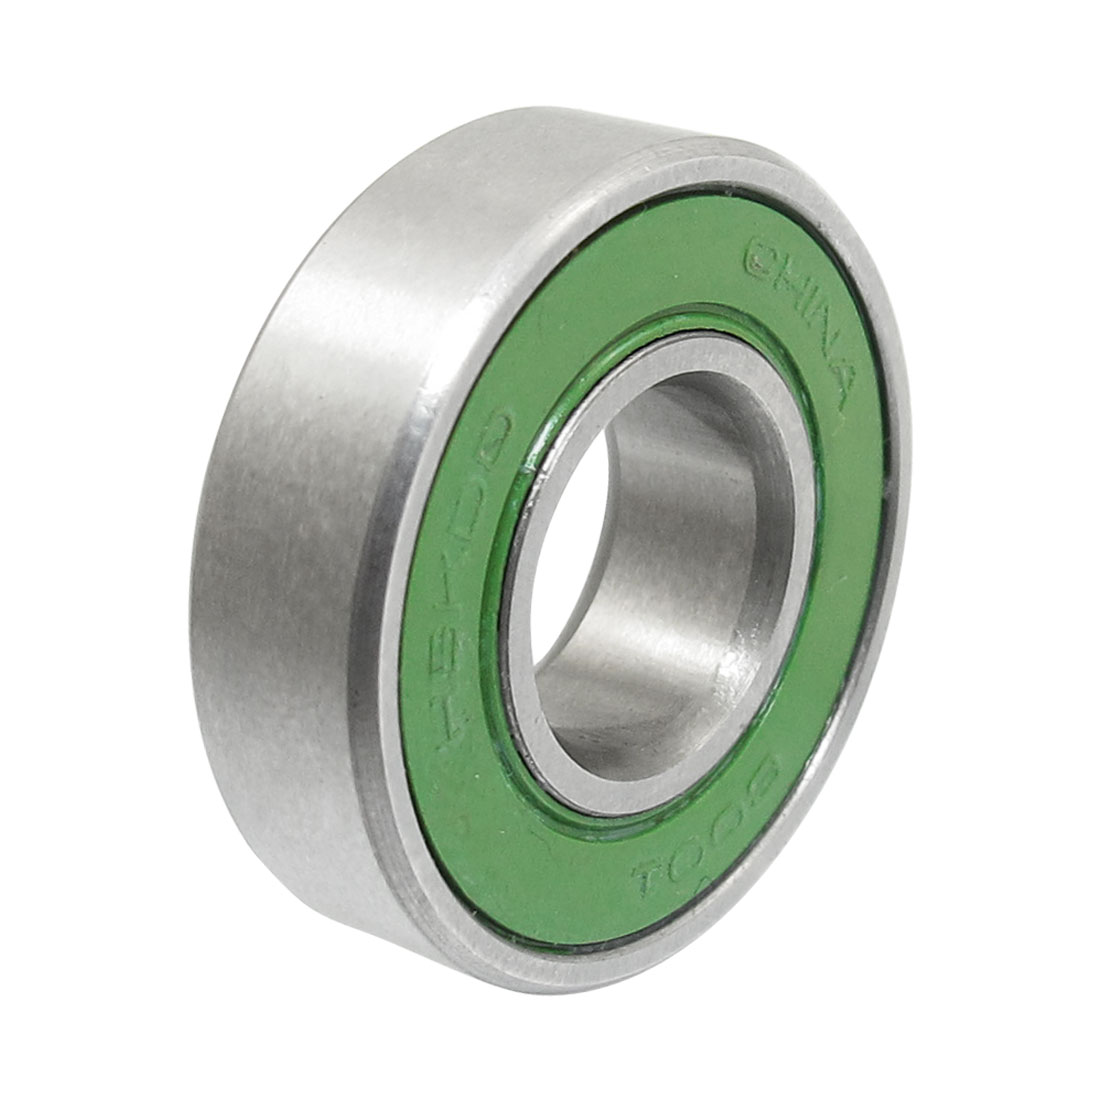 28mm x 12mm x 8mm Skateboard Deep Groove Ball Bearing